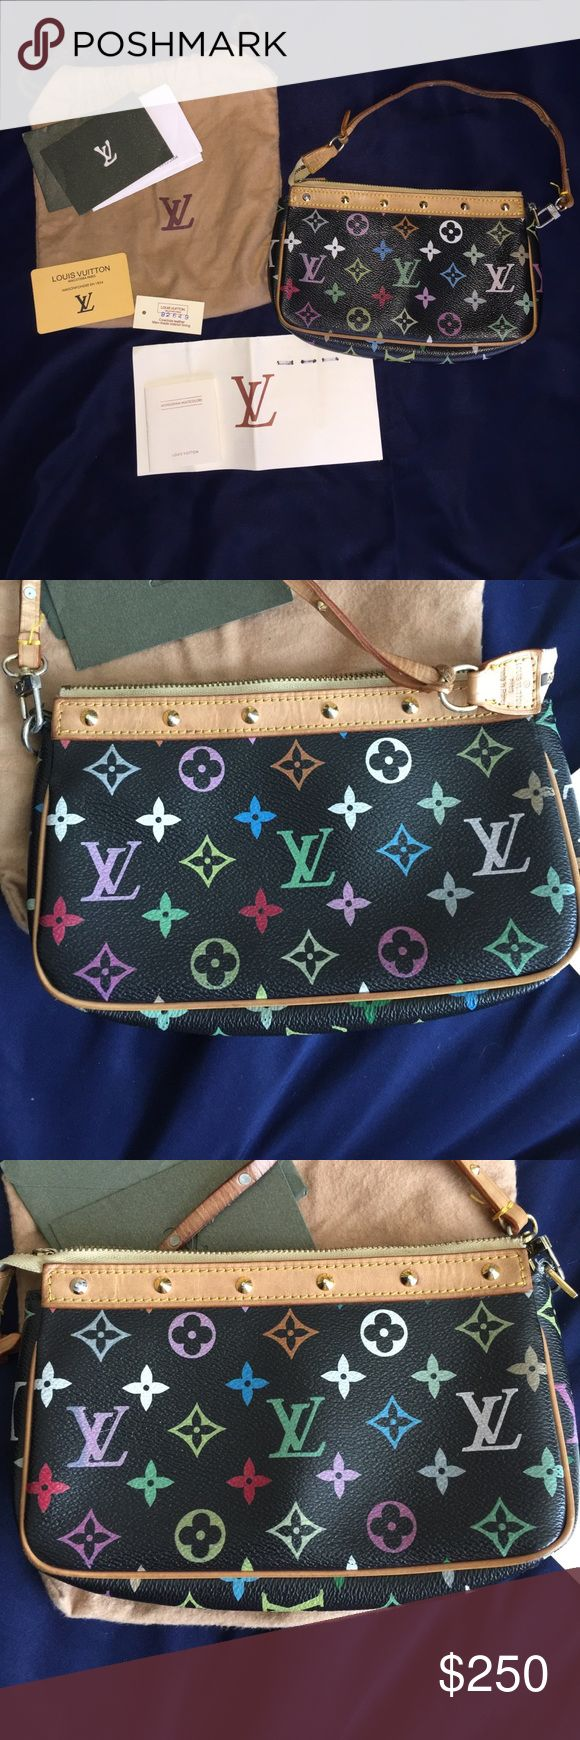 Louis Vuitton murakami pochette OBO Gently used Louis Vuitton murakami purse. Some discoloration and wear see pictures. The strap on top seems to be coming apart but does not affect the bag. Inside is perfect! Comes with original tags and dust bag. Make me an offer! Louis Vuitton Bags